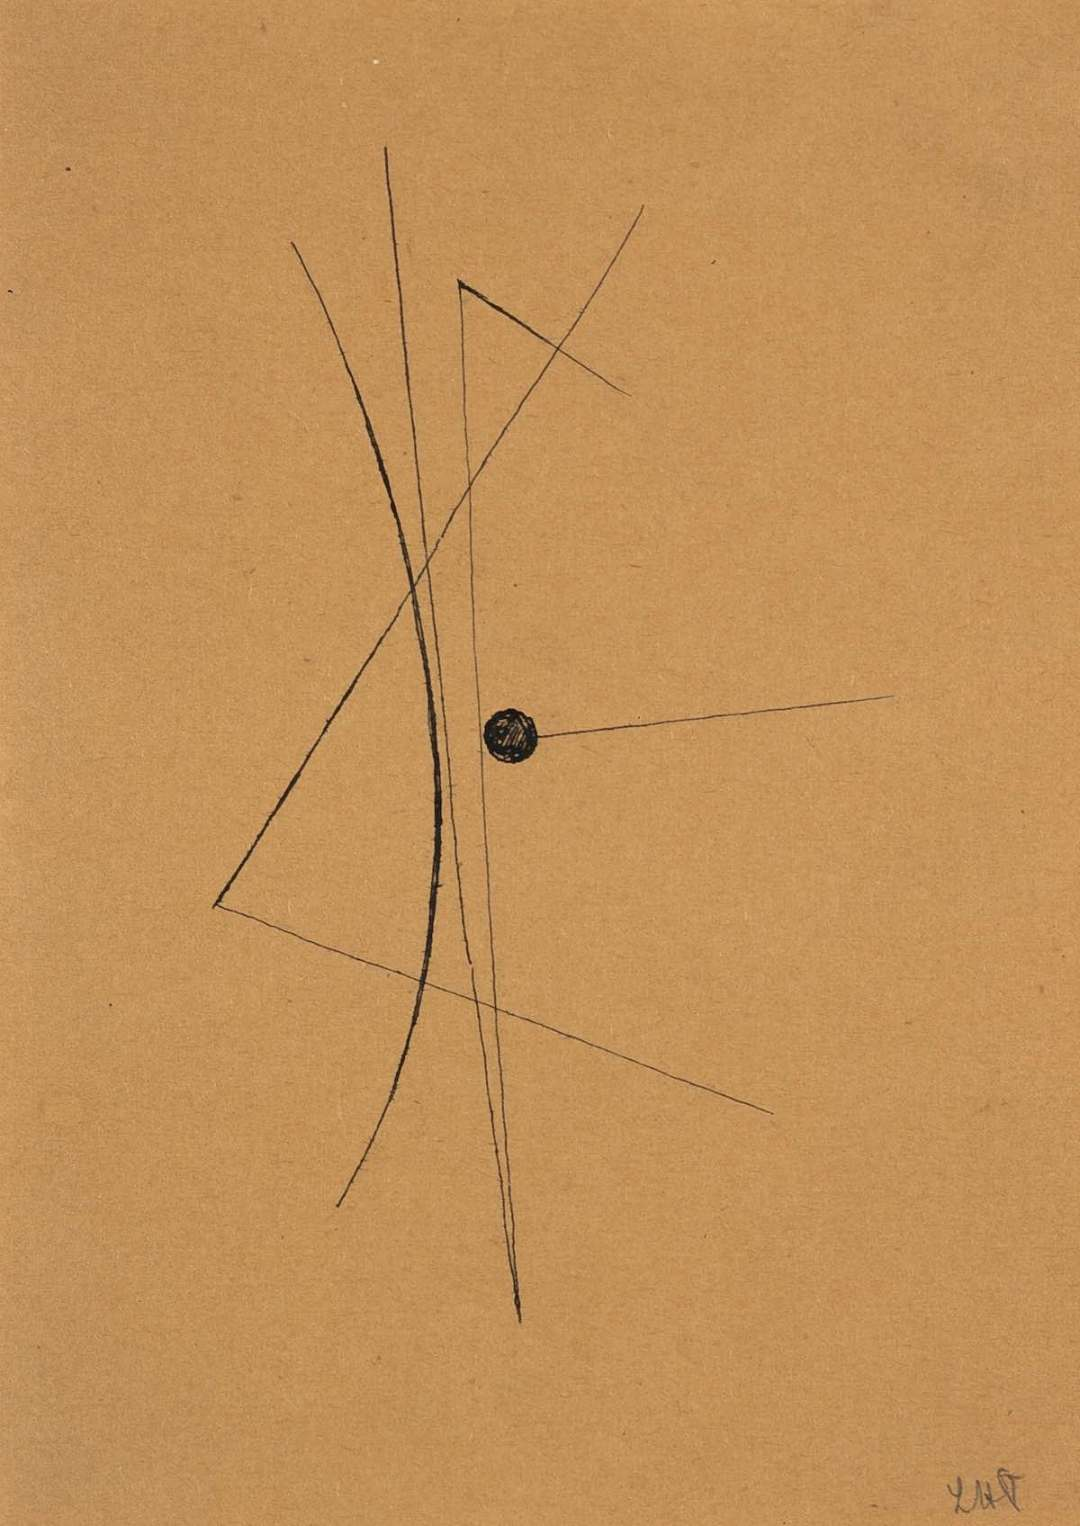 Untitled, 1928, ink on paper 16,2 x 11,8 cm, private collection, Paris